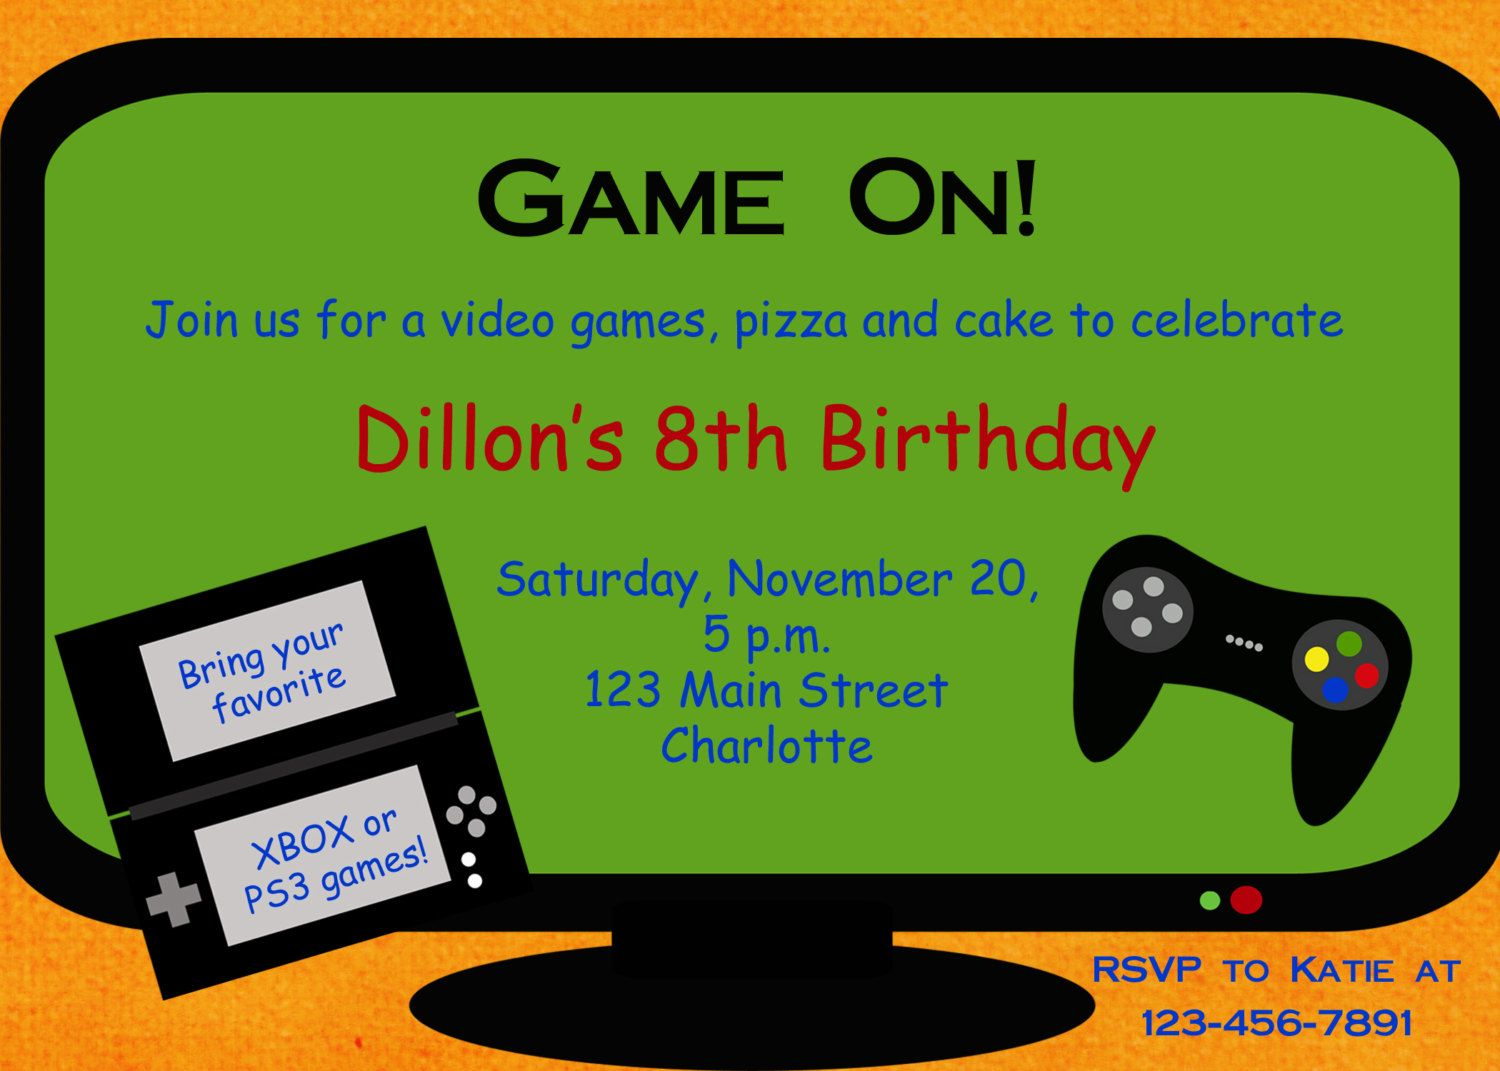 Video Game Party Invitation Template Free - Google Search | Party Ideas - Free Printable Video Game Party Invitations